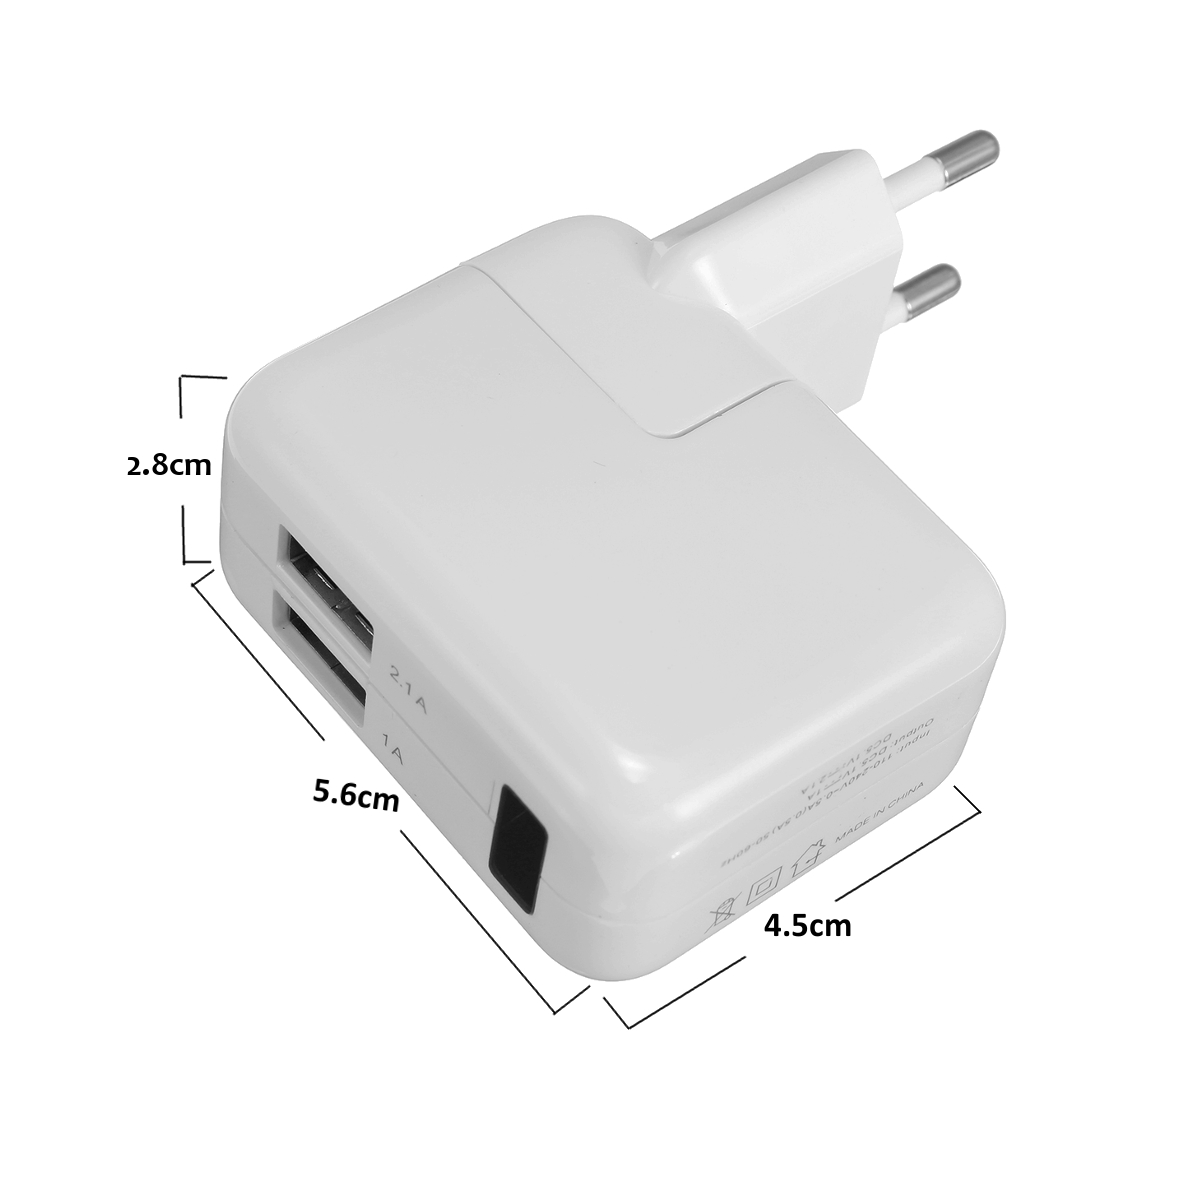 1080P USB WiFi Hidden Spy Camera Wall Travel Charger with Charging Cable for Cell Phone